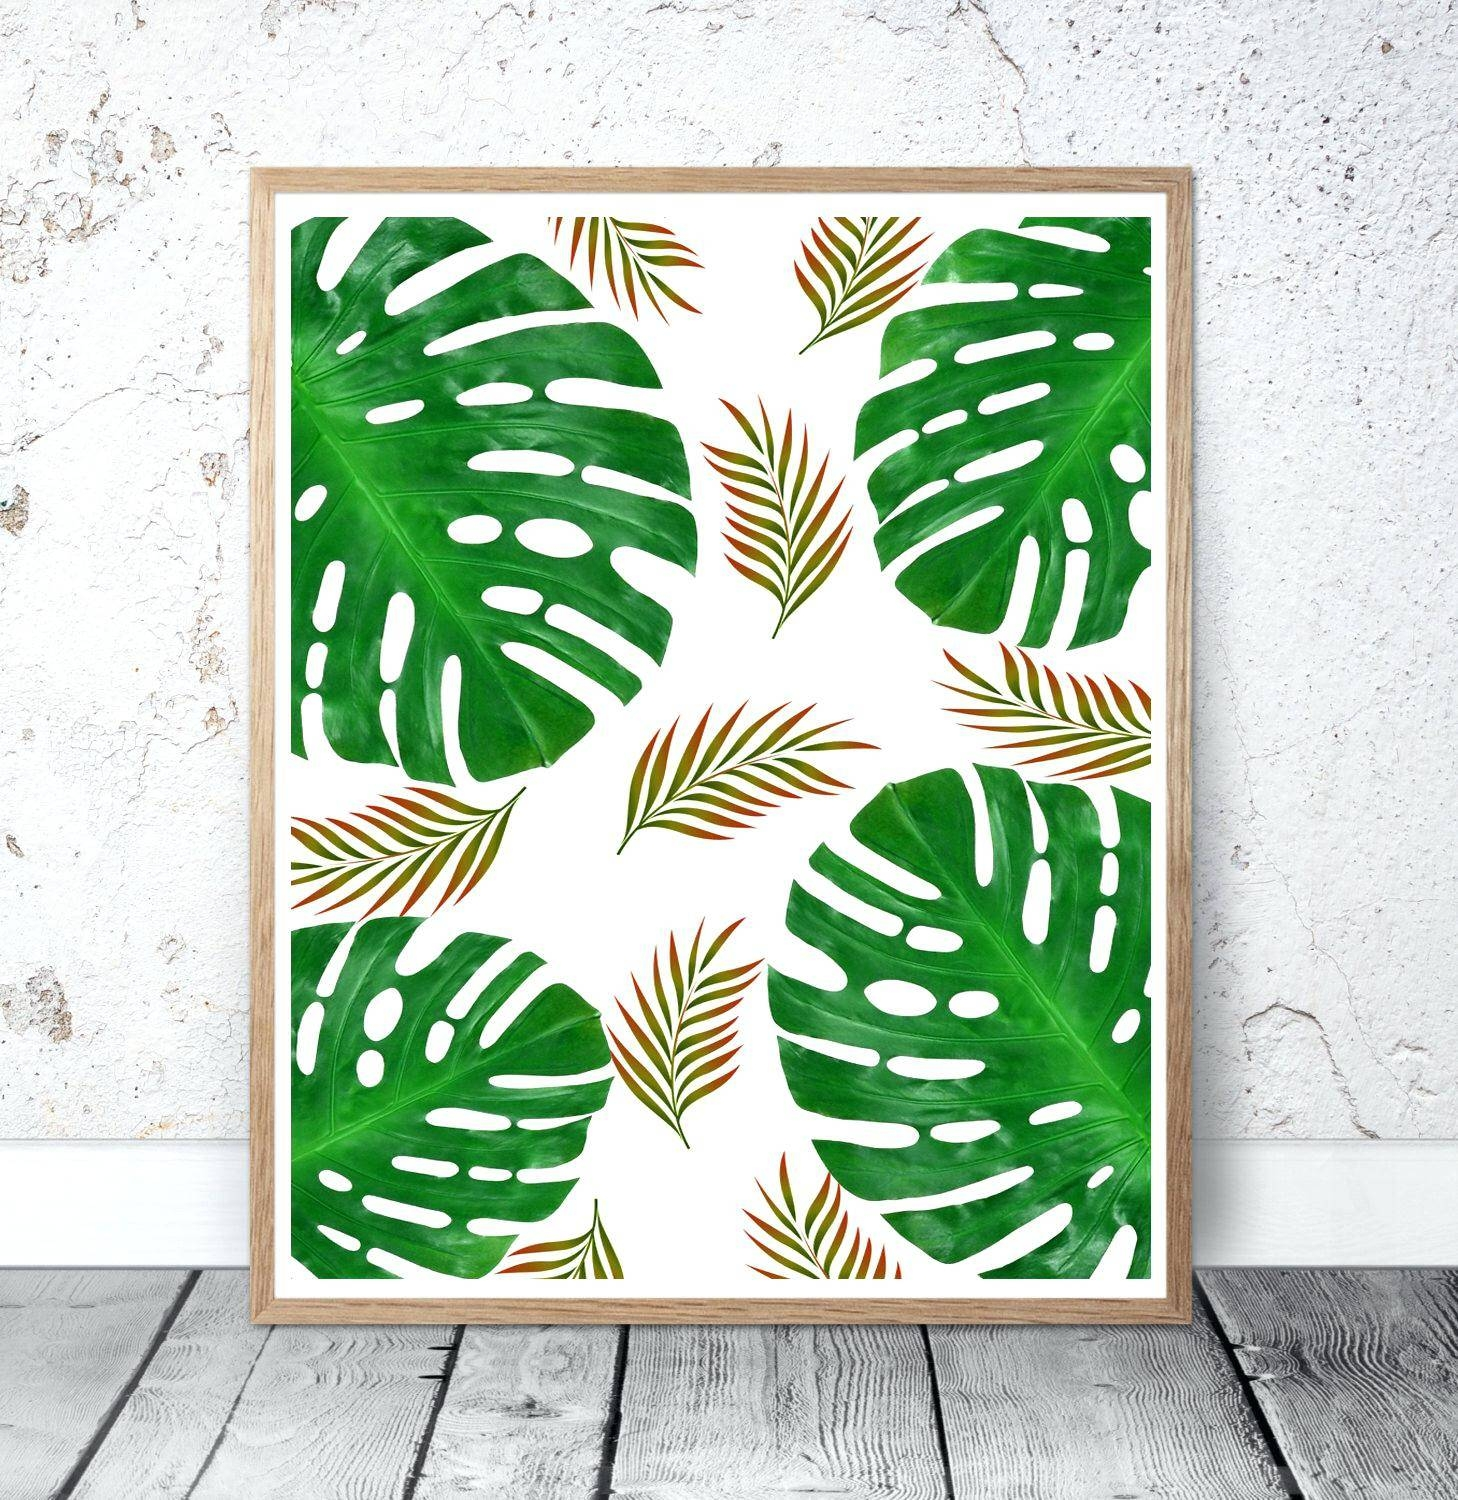 Image Gallery of Palm Leaf Wall Art (View 14 of 20 Photos)